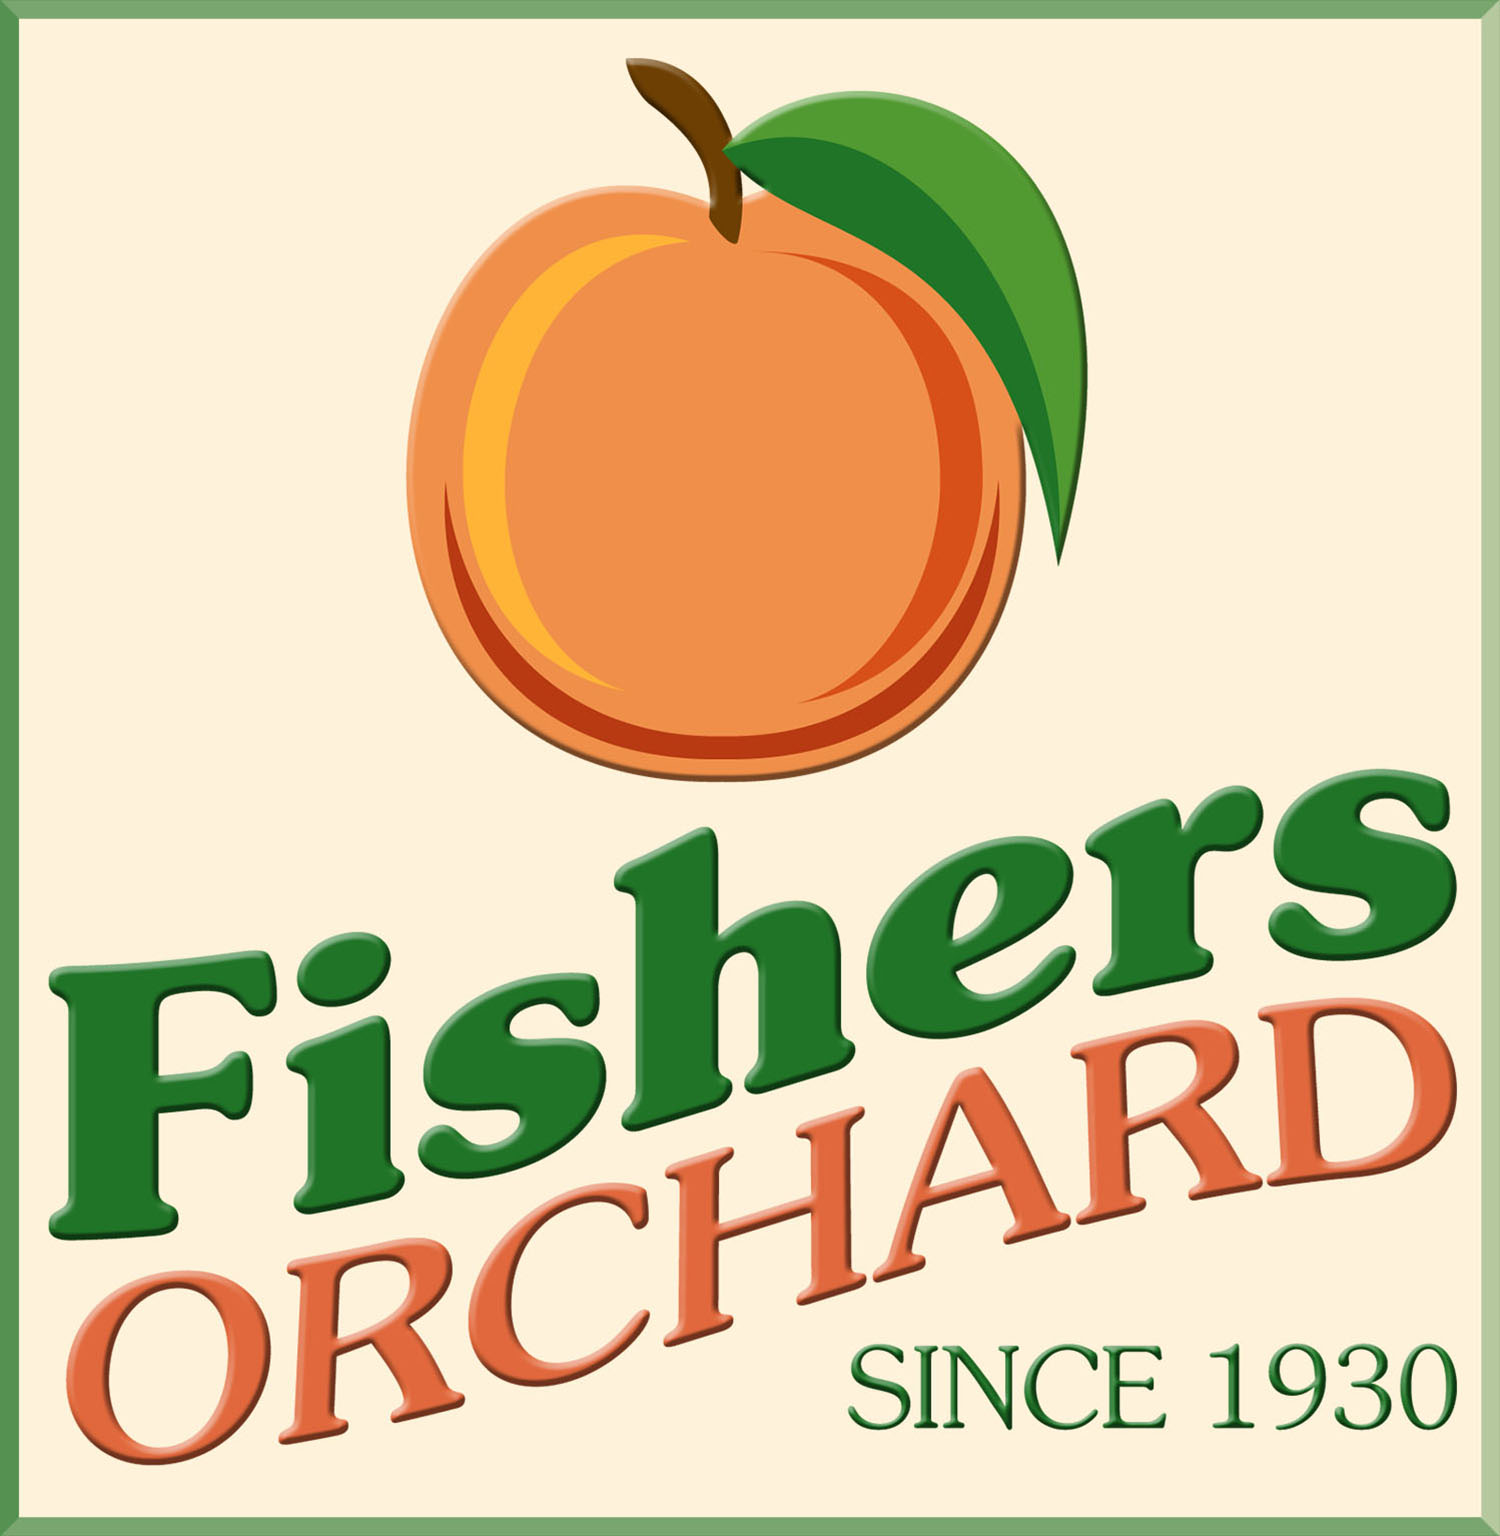 Fishers Orchard